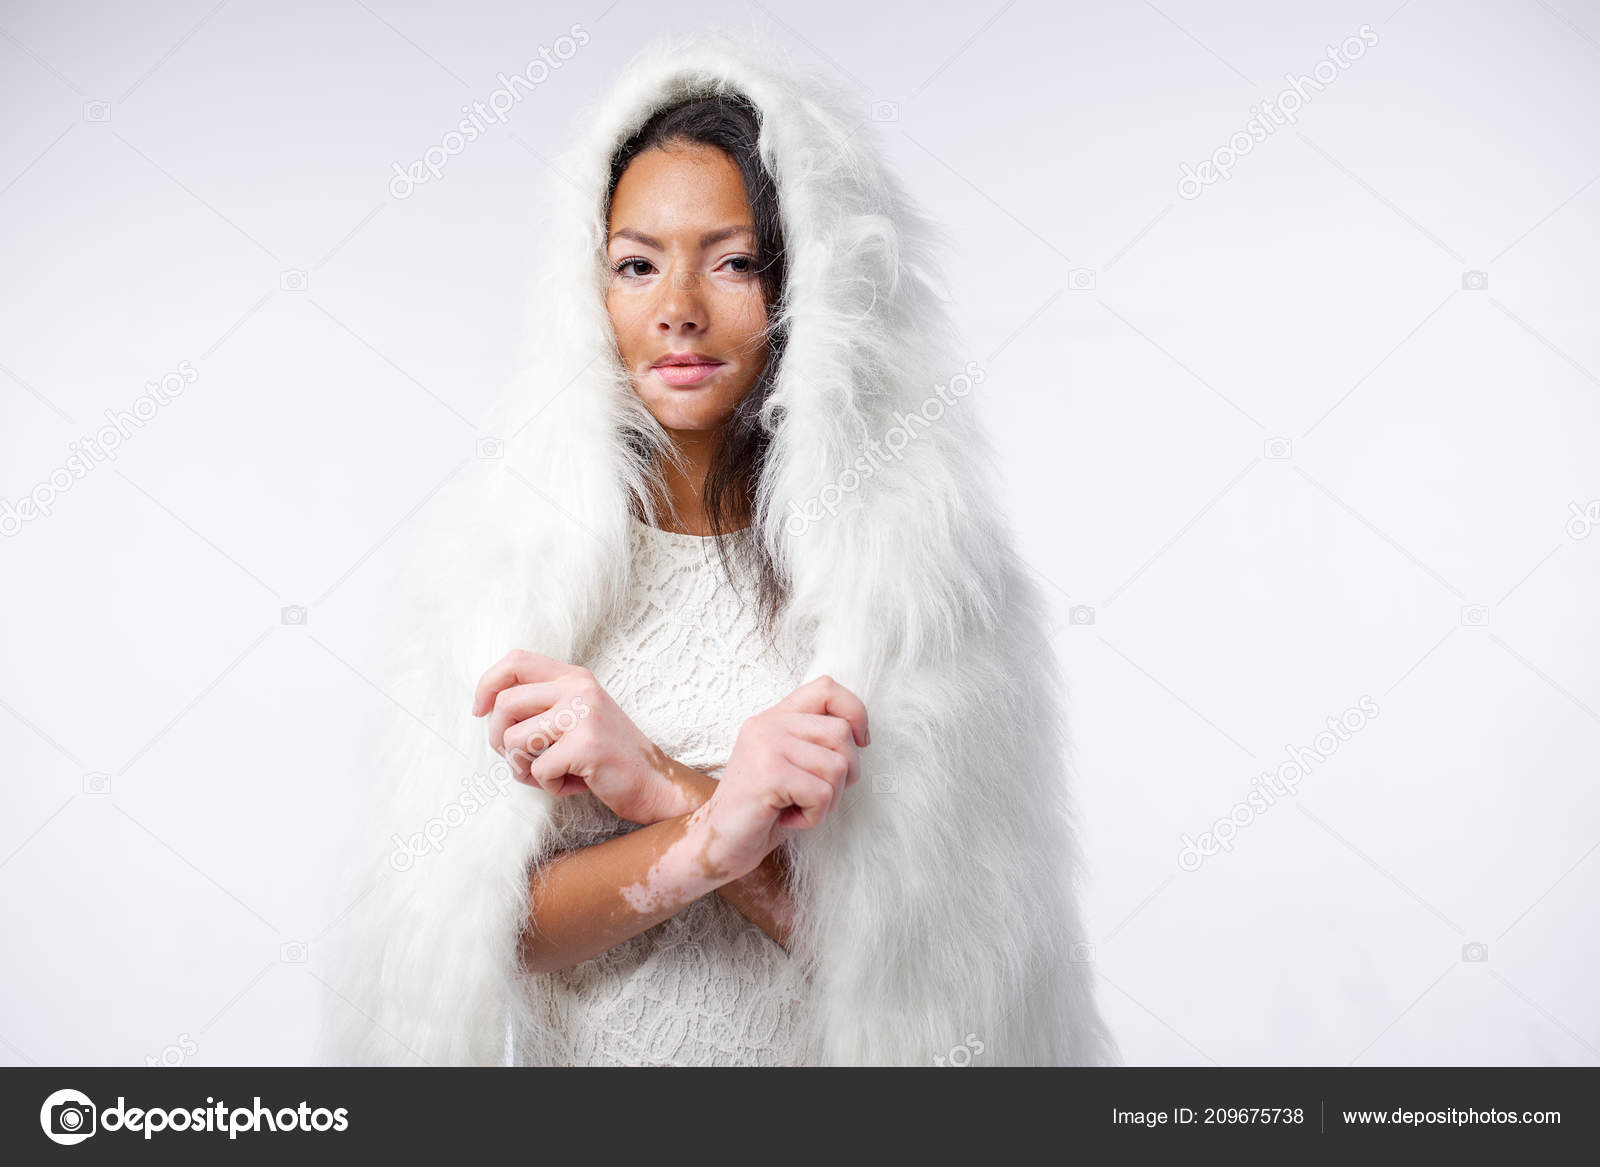 A Beautiful African Girl With Skin Problems Is Dressed In Warm White Faux Fur Vitiligo Concept Stock Photo C Andreonegin 209675738